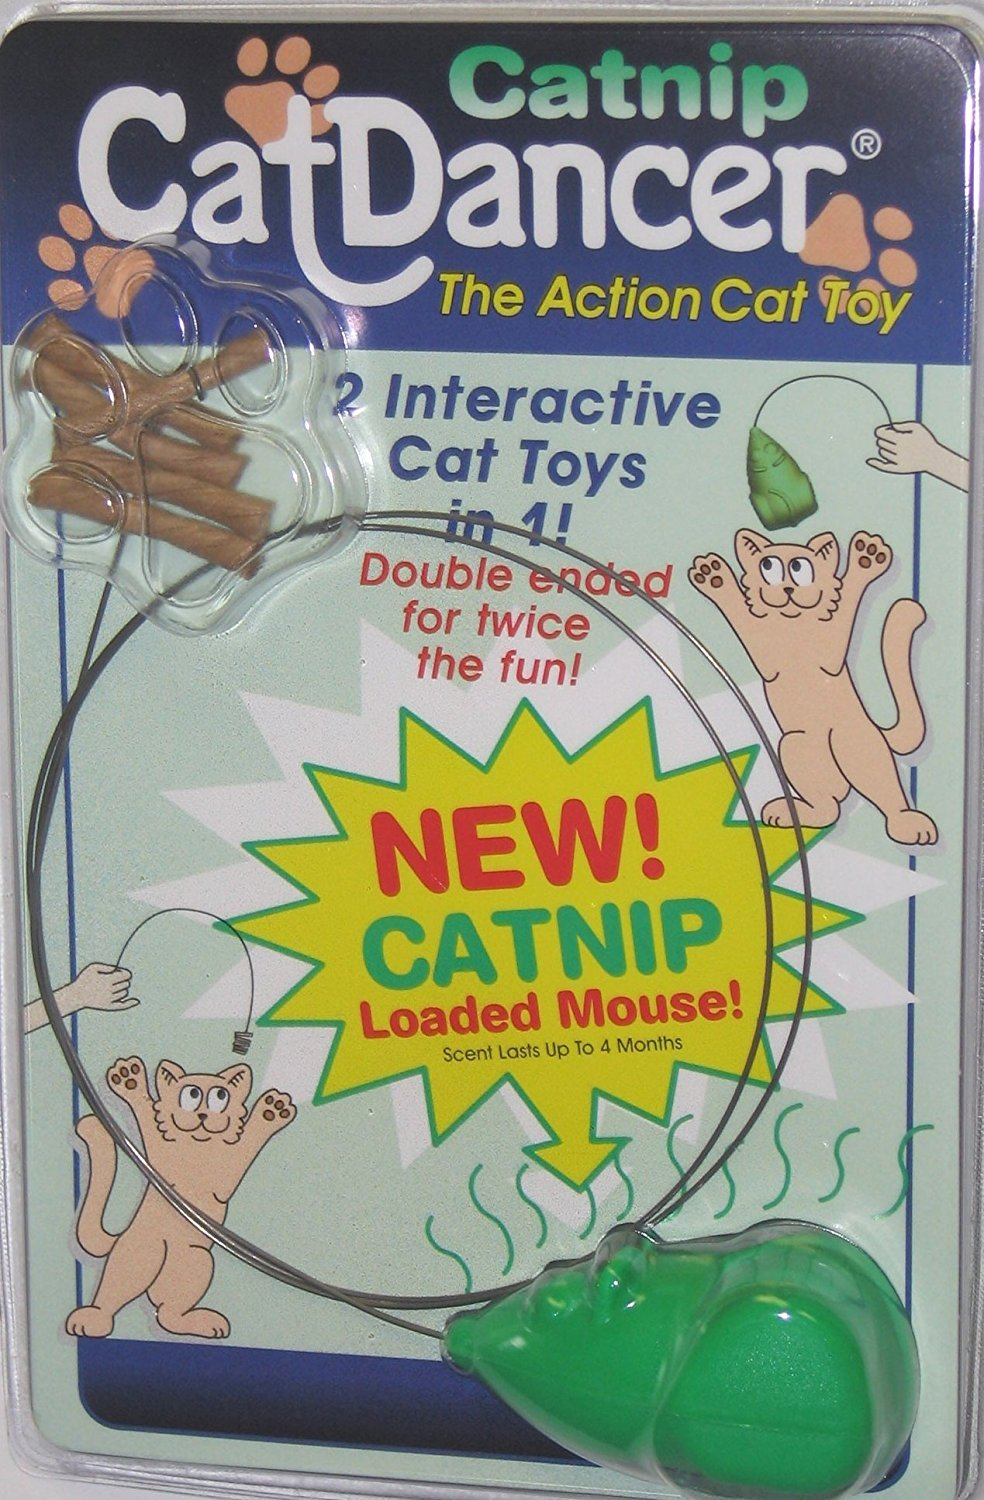 Cat Dancer 601 Catnip Cat Dancer Interactive Cat Toy, Made in the USA Ship from US..., By Cat Dancer Products by